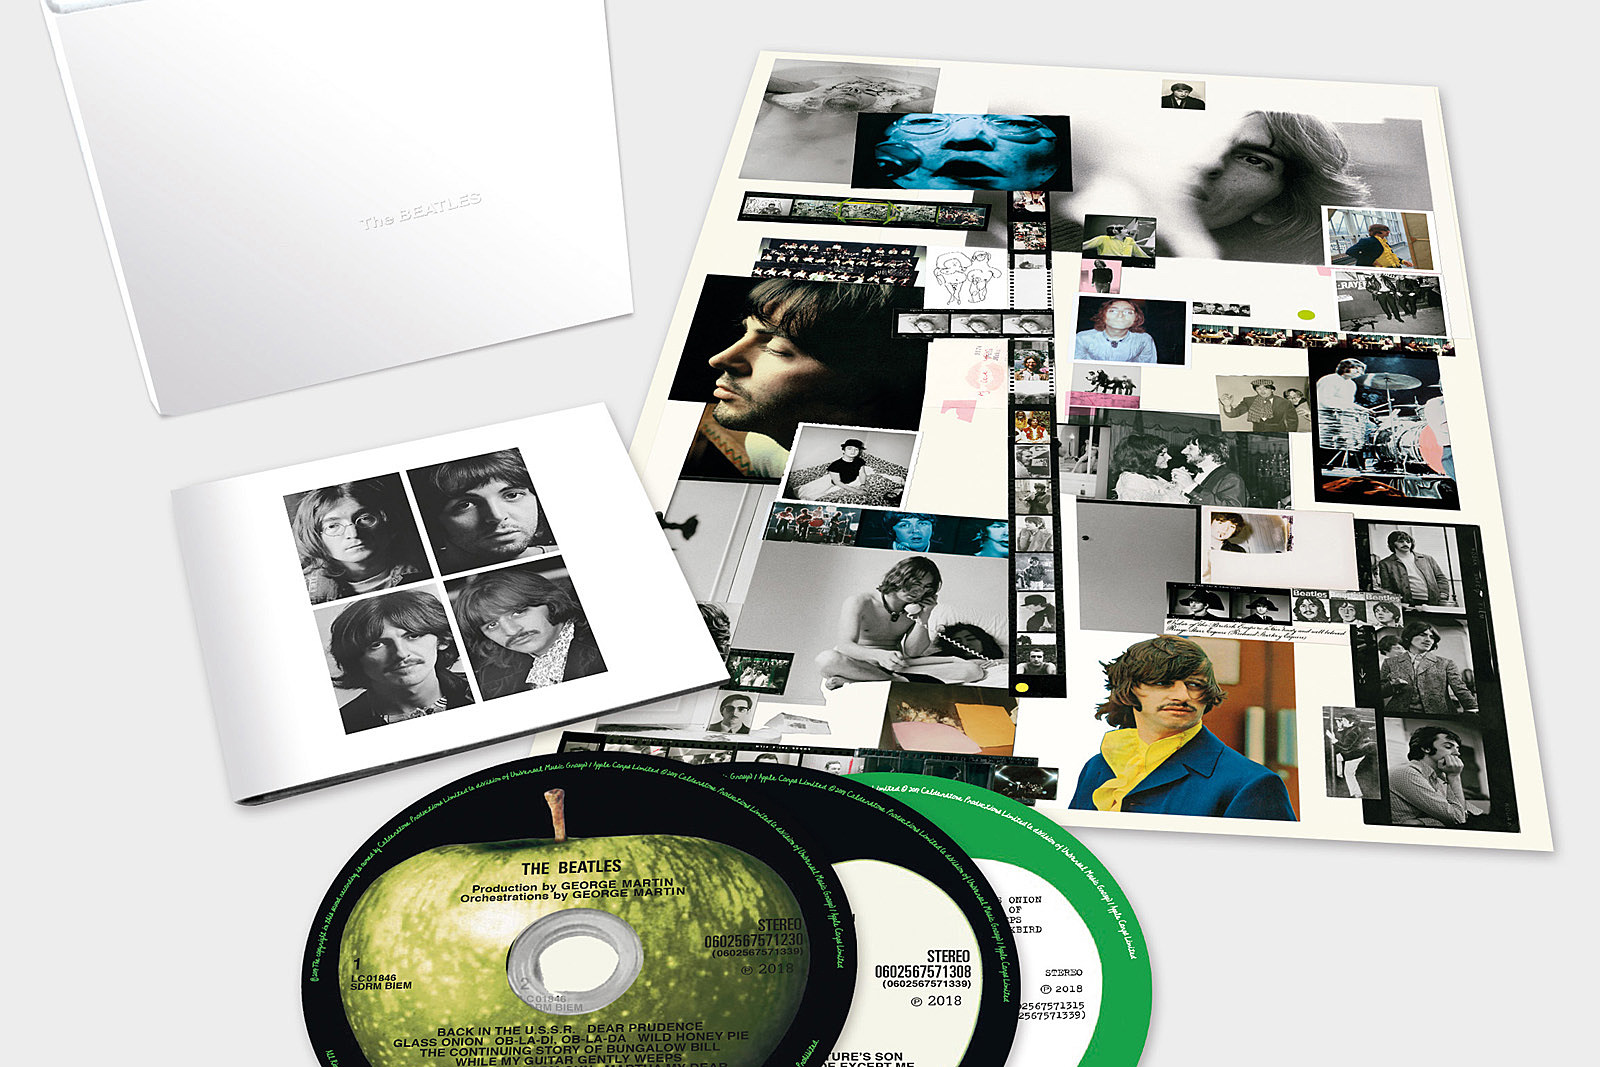 Beatles' White Album Expanded Version Announced